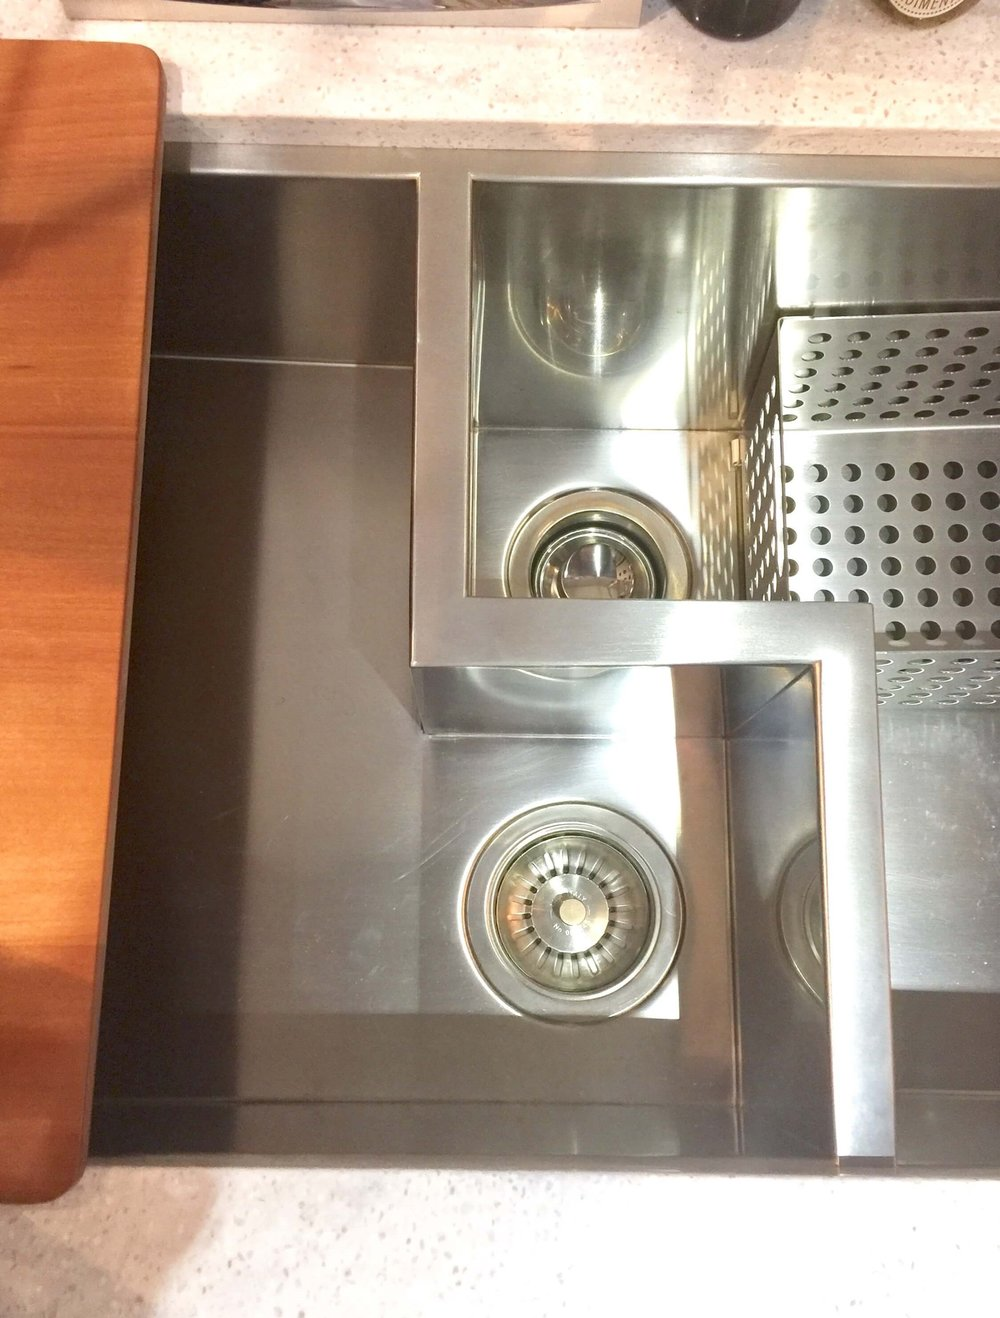 Rohl extra wide prototype stainless sink with centered drains